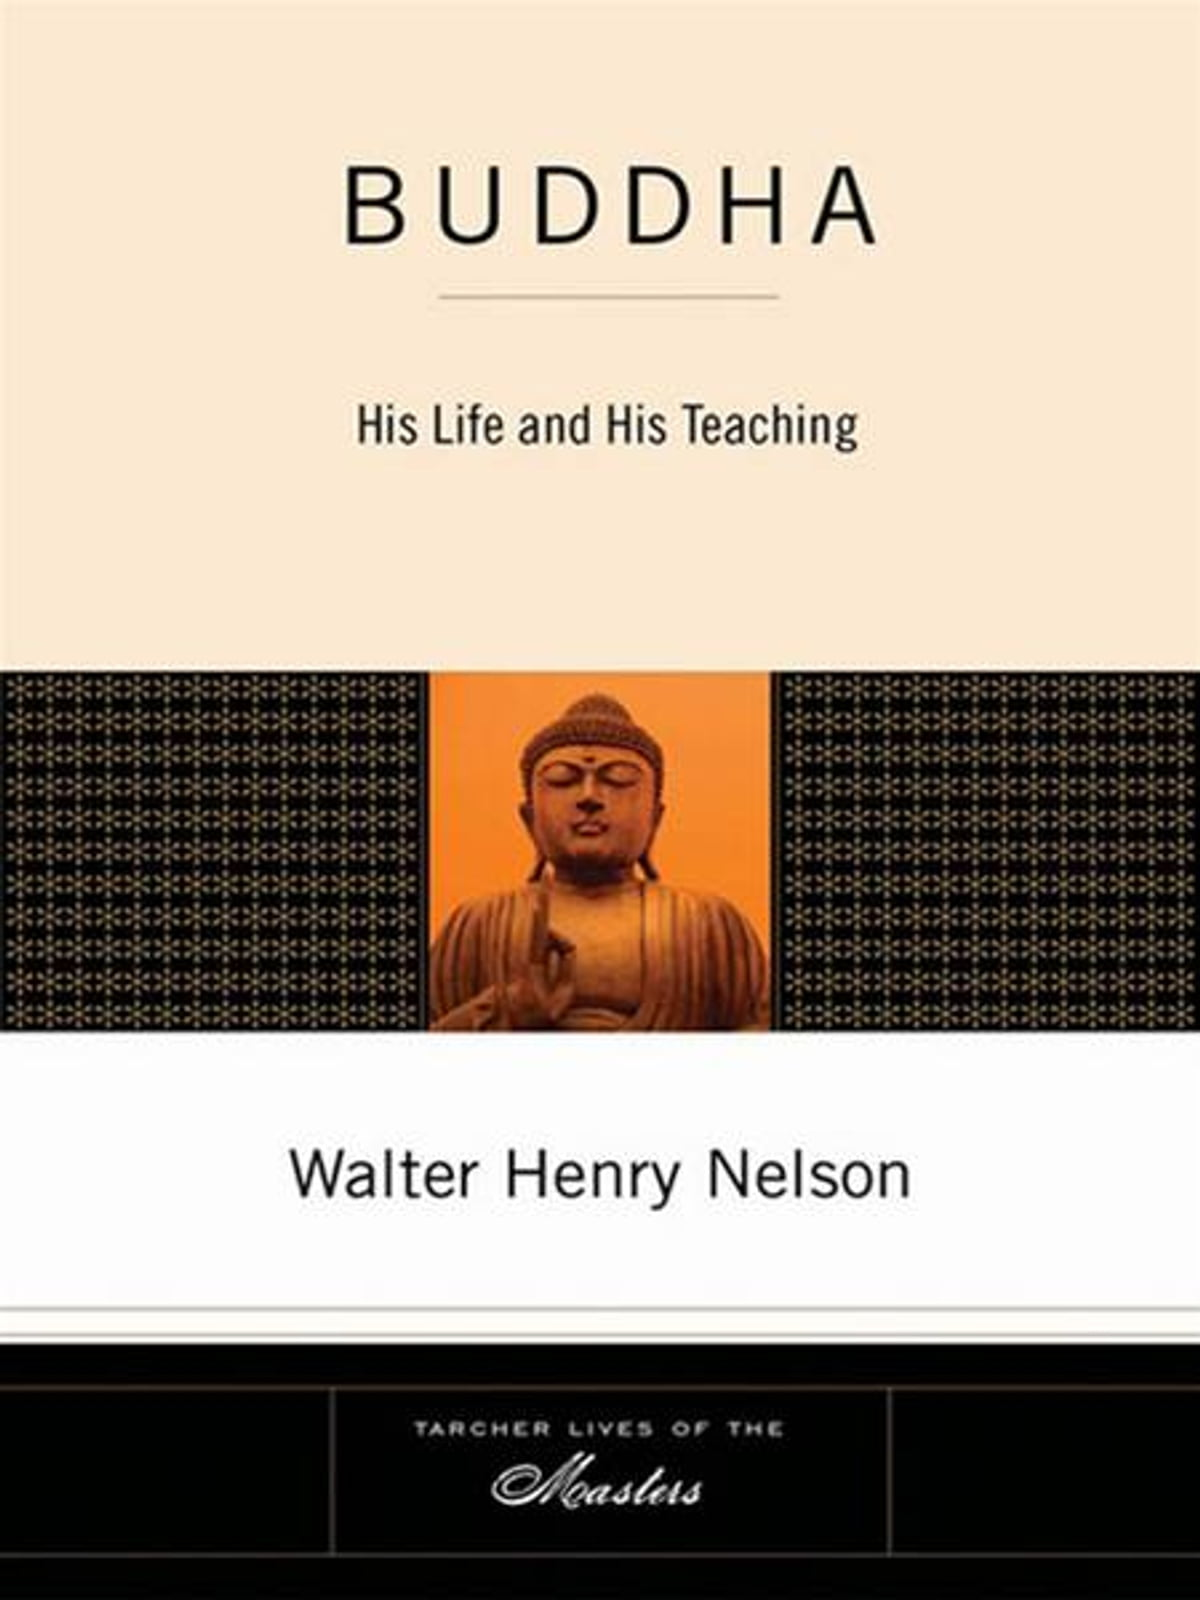 The Buddha And His Teachings Essential Introduction To Origins Of Buddhism From Life Through Rise As An